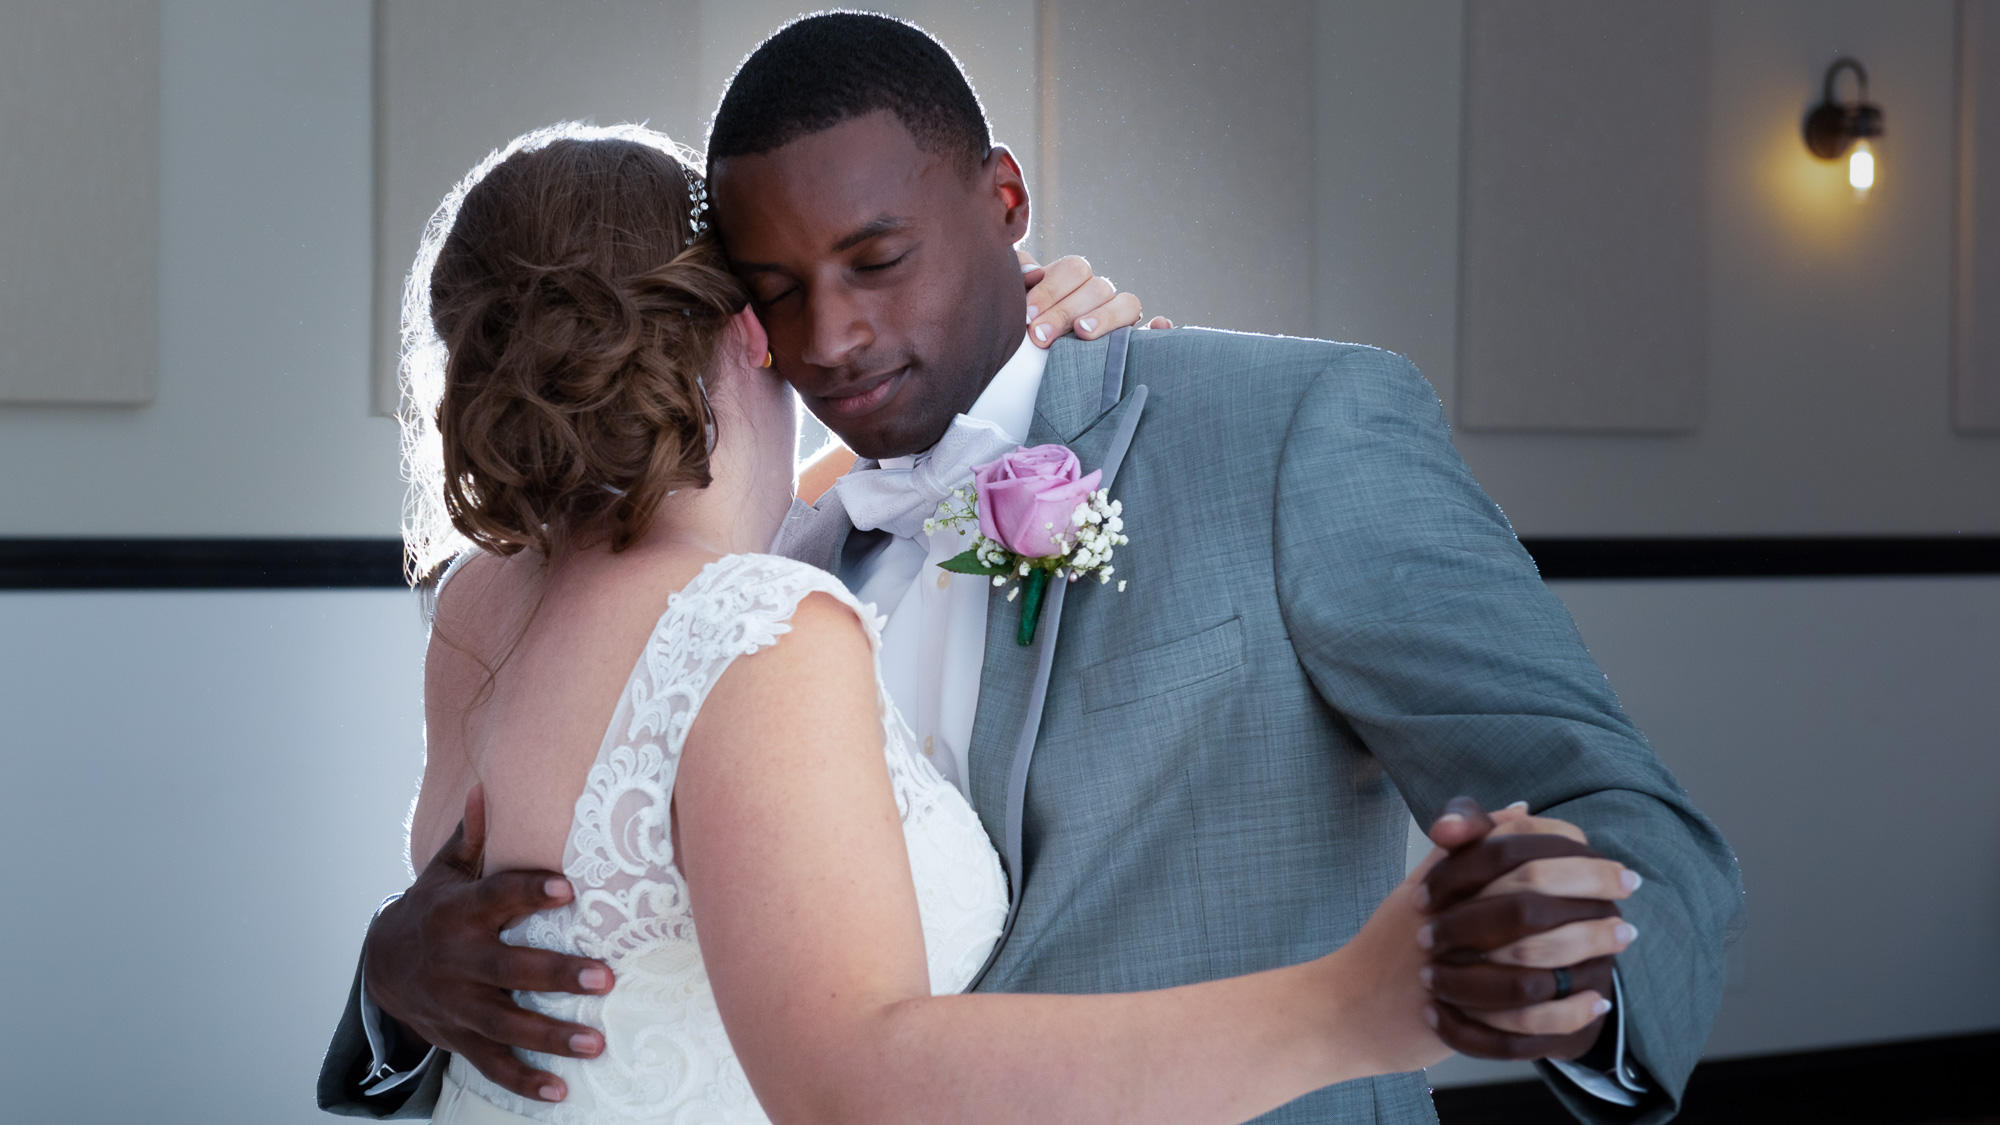 Bride_and_Groom_First_Dance.jpg